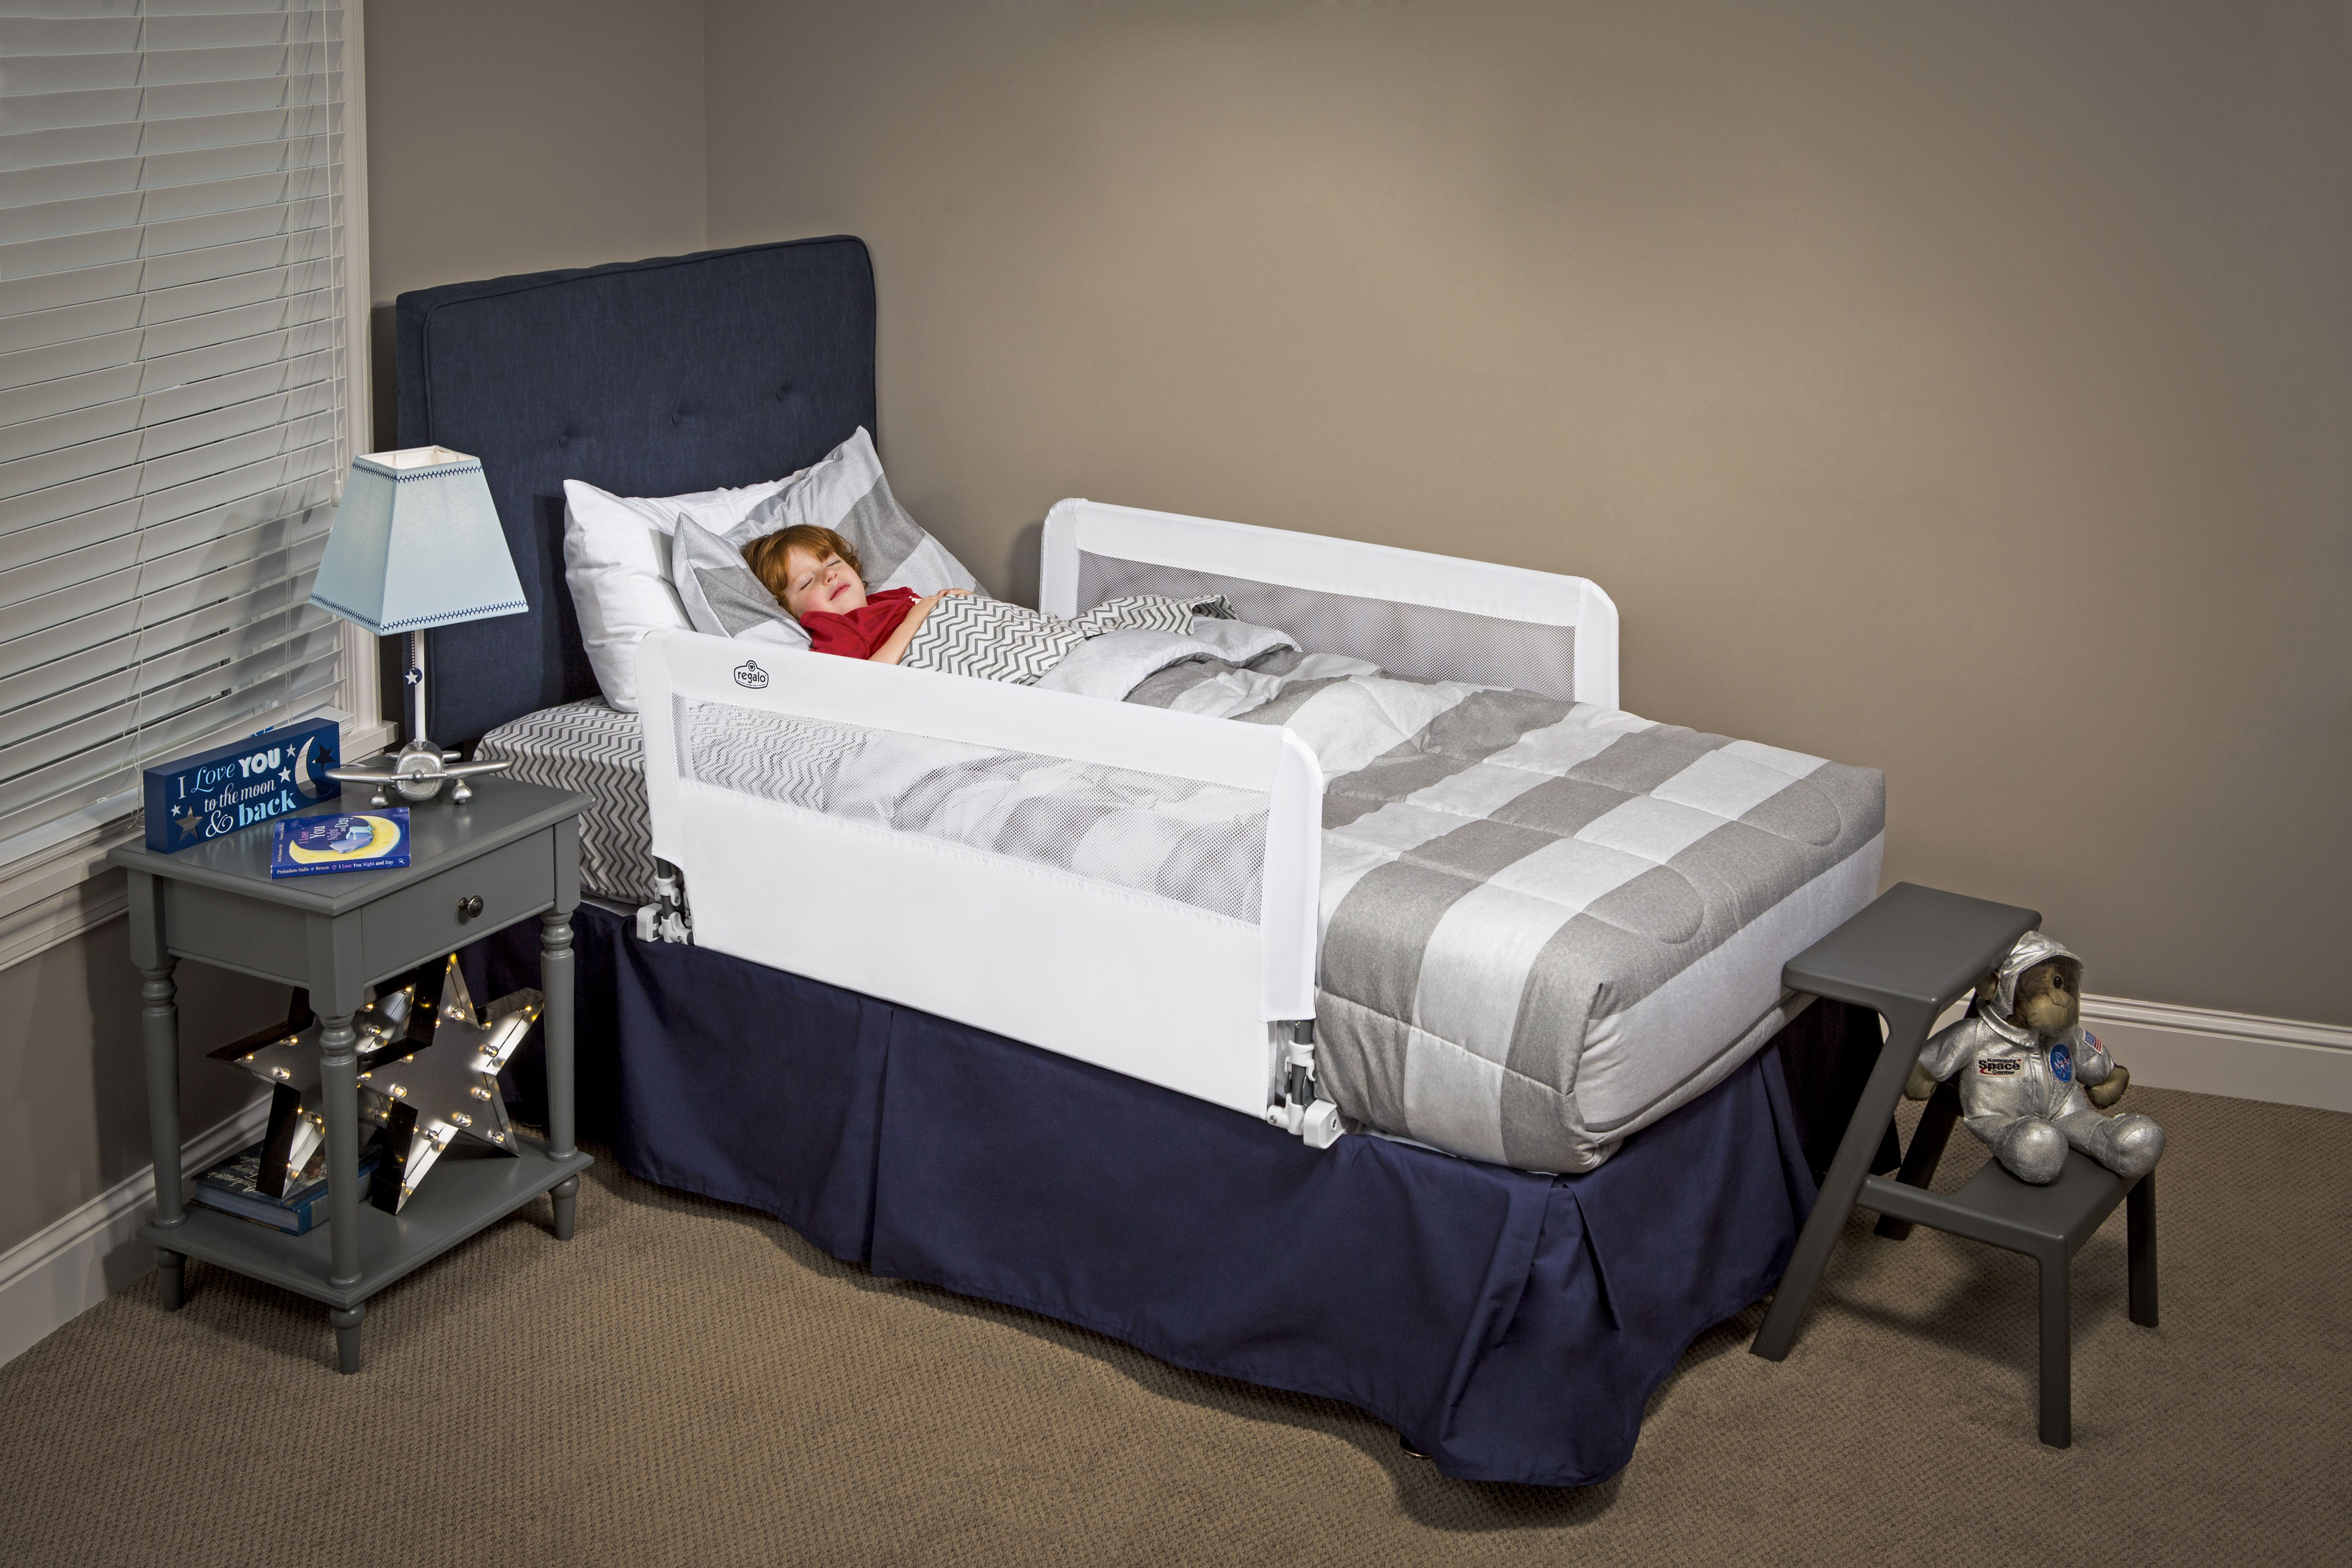 Hideaway Double Sided Bed Rail Bed Rails For Toddlers Bed Rails Bed